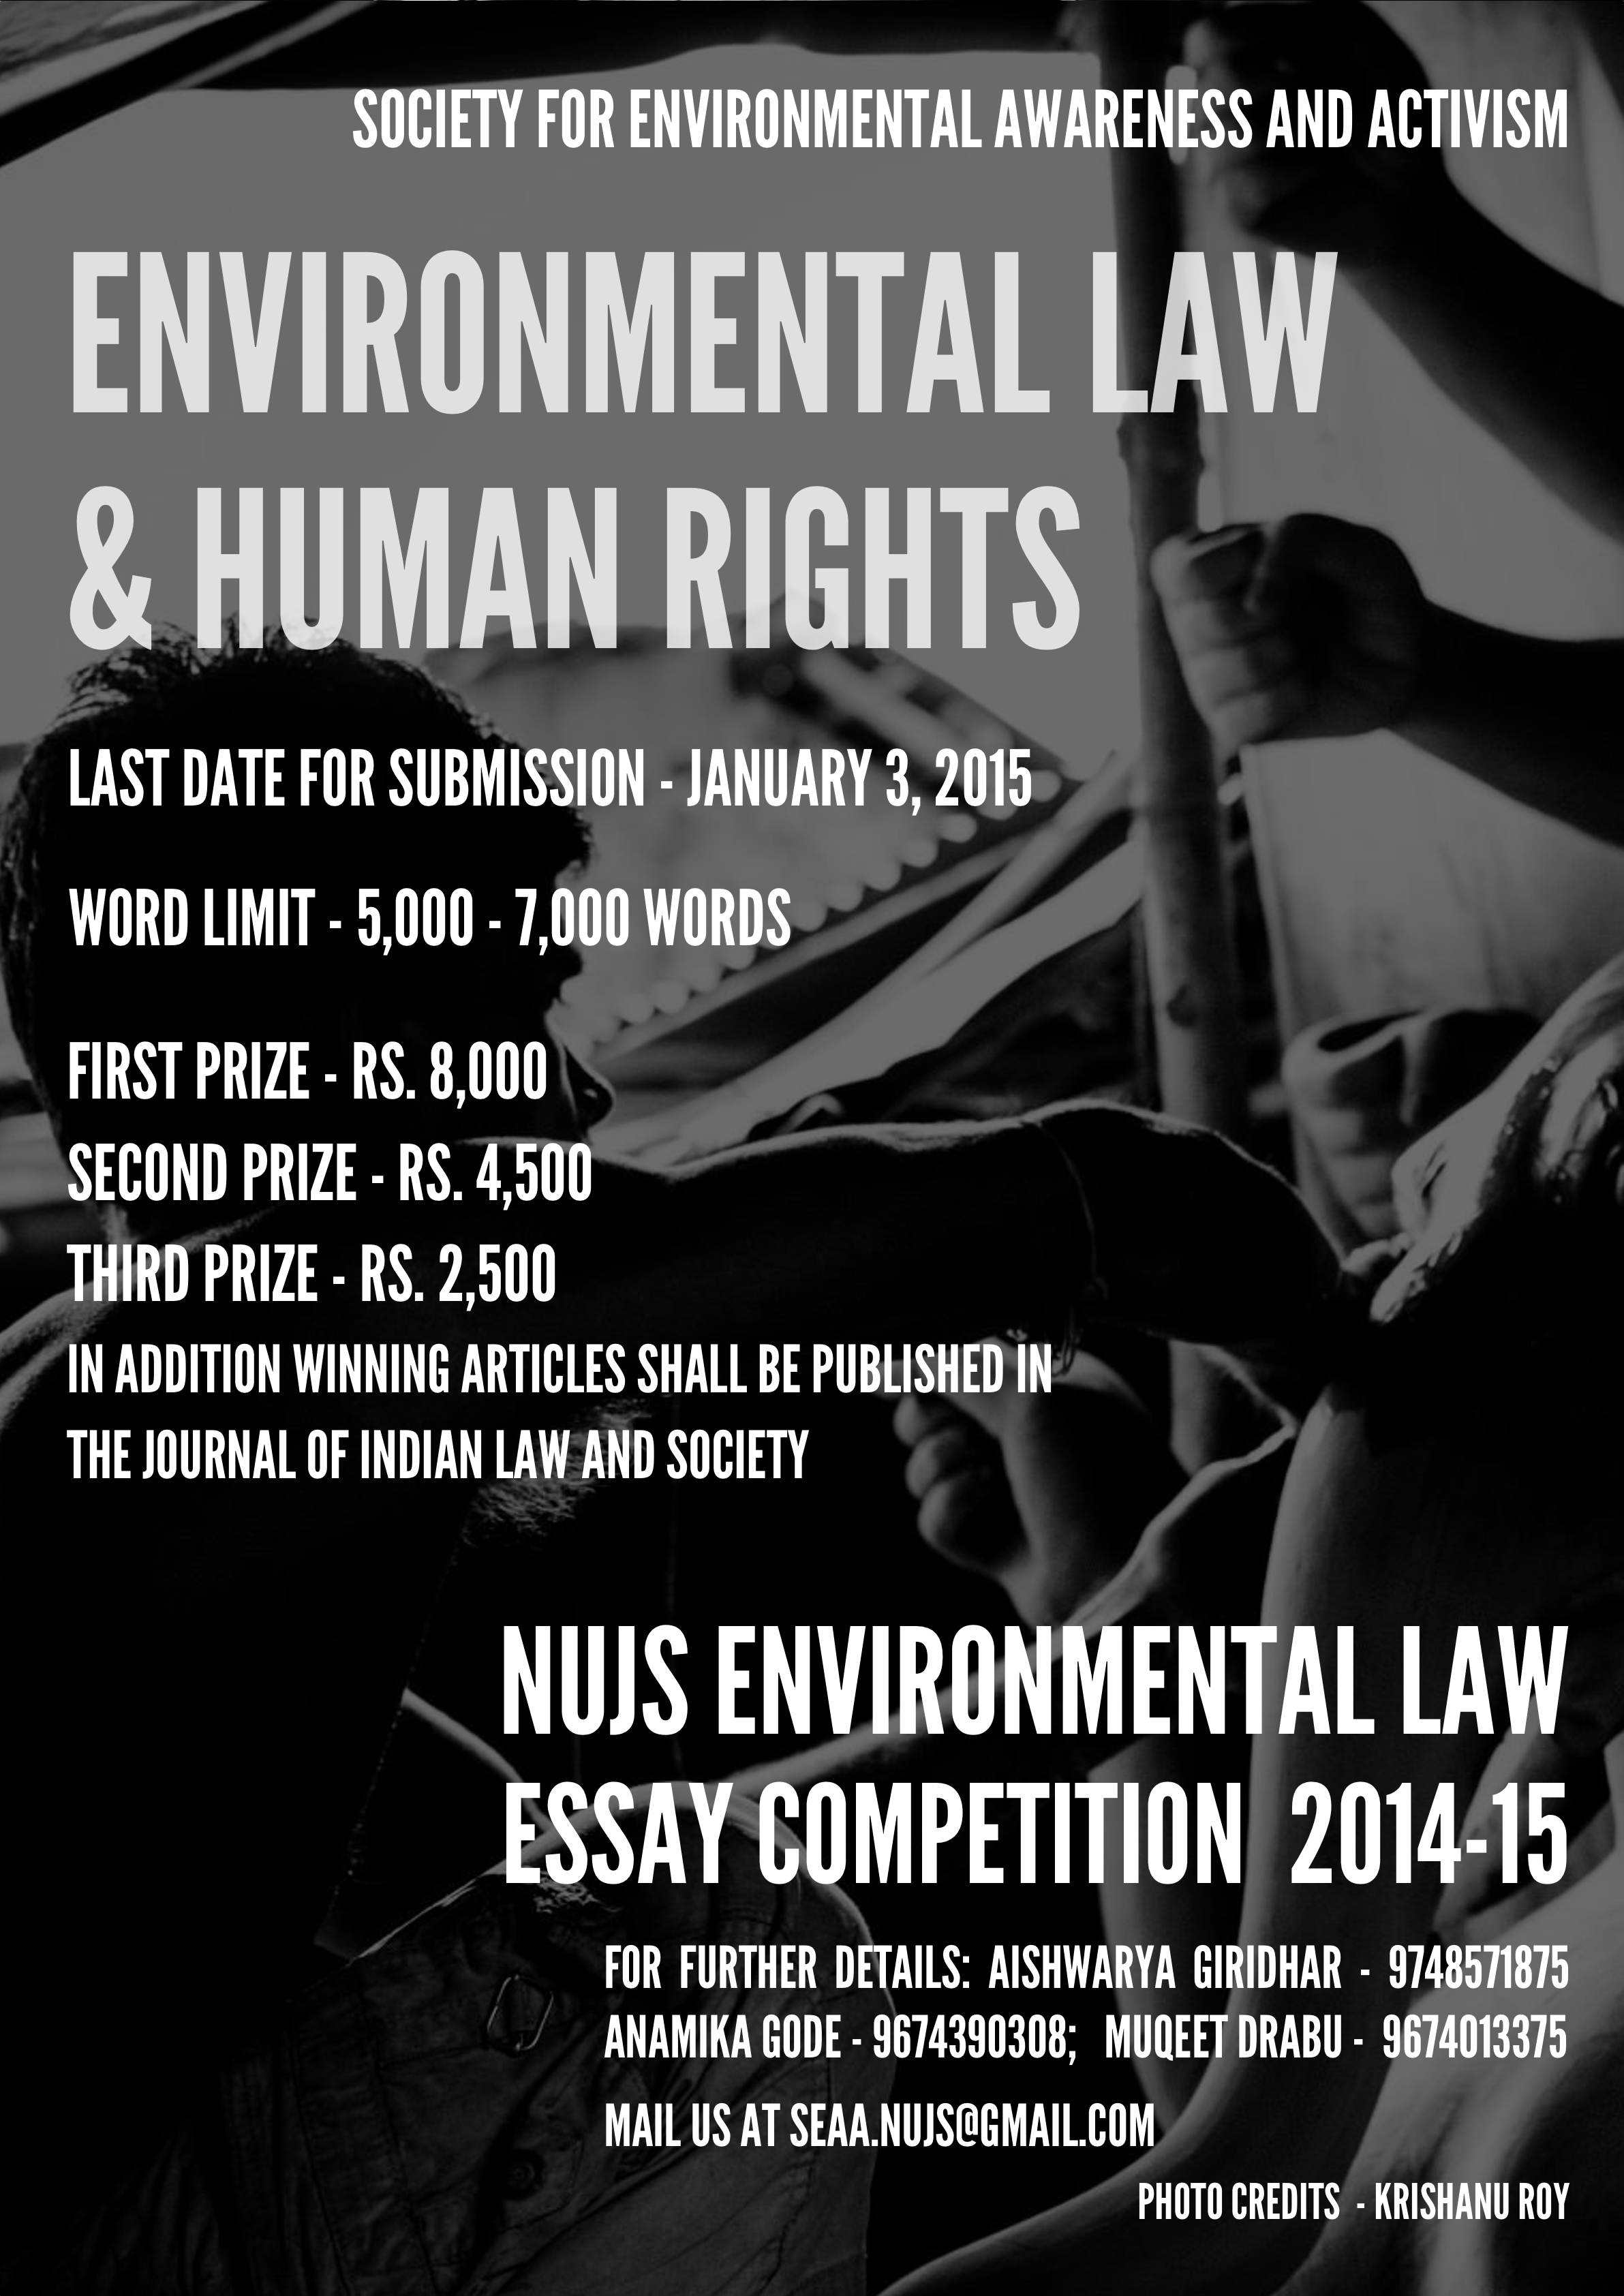 NUJS Environmental Law Essay Competition 2014-15